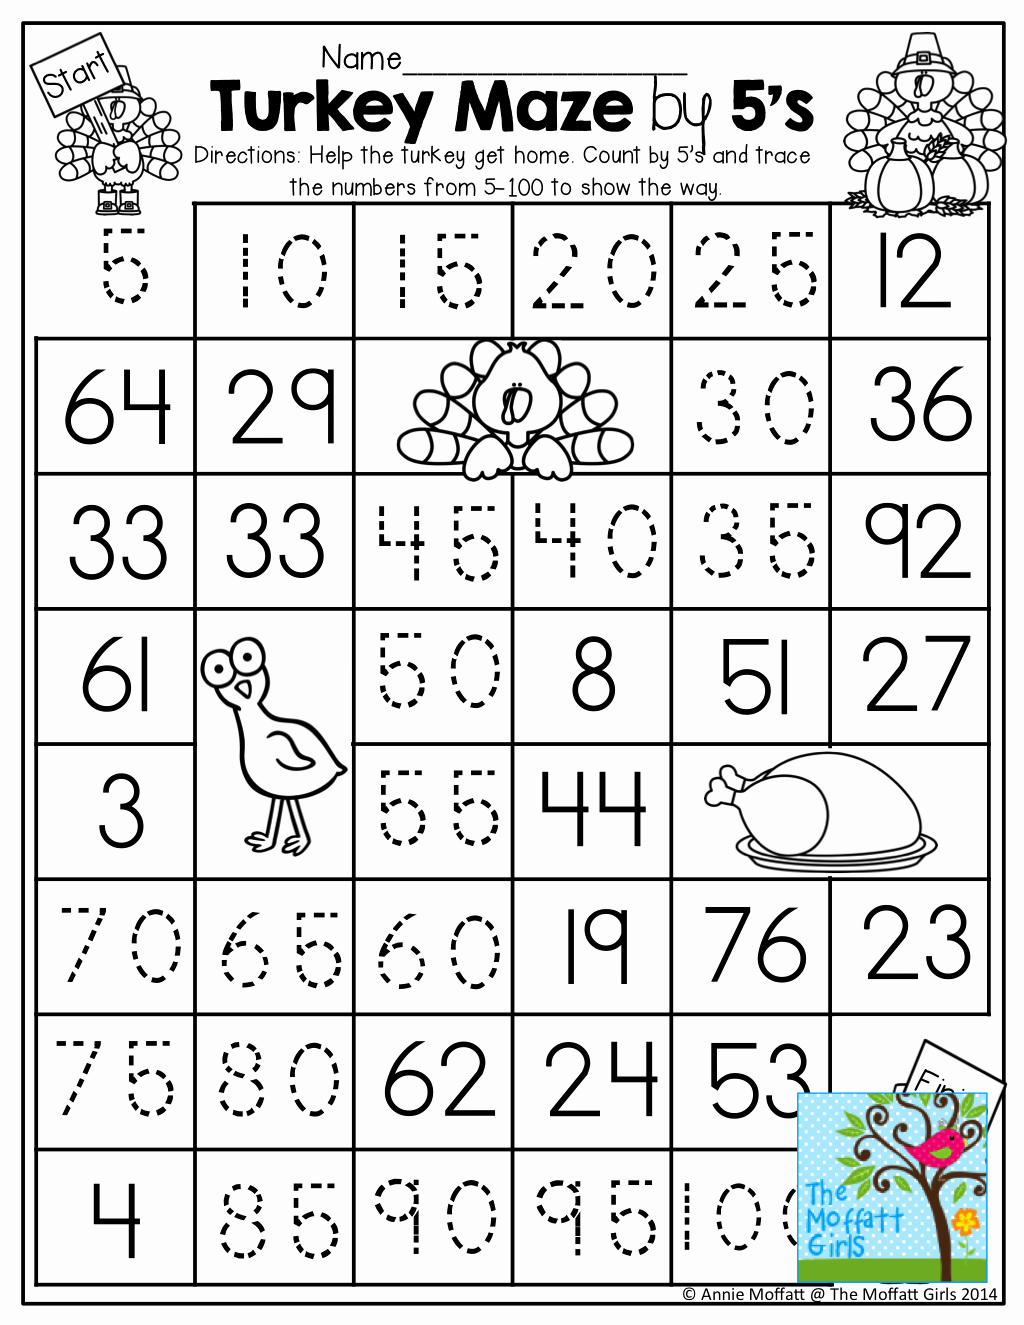 Count by 5s Worksheet Awesome Count by 5 S Worksheet by Tracing the Path From the Turkey